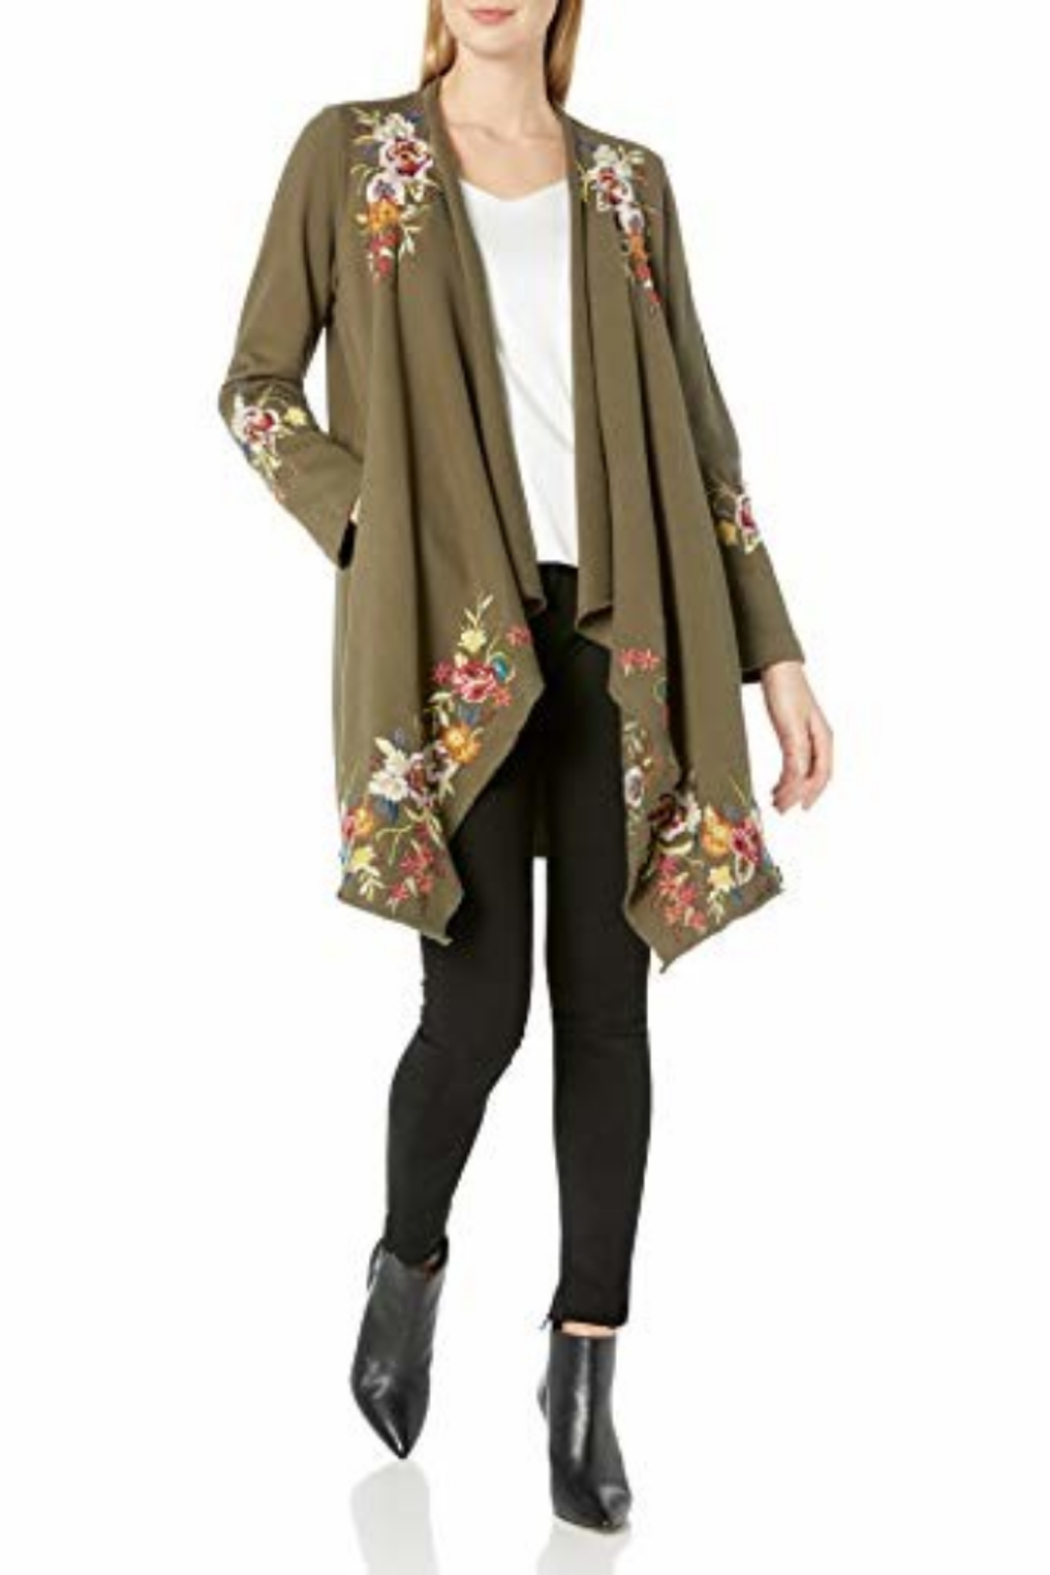 Johnny Was J41820-O - Adah F.T. Draped Cardigan Coat - Main Image